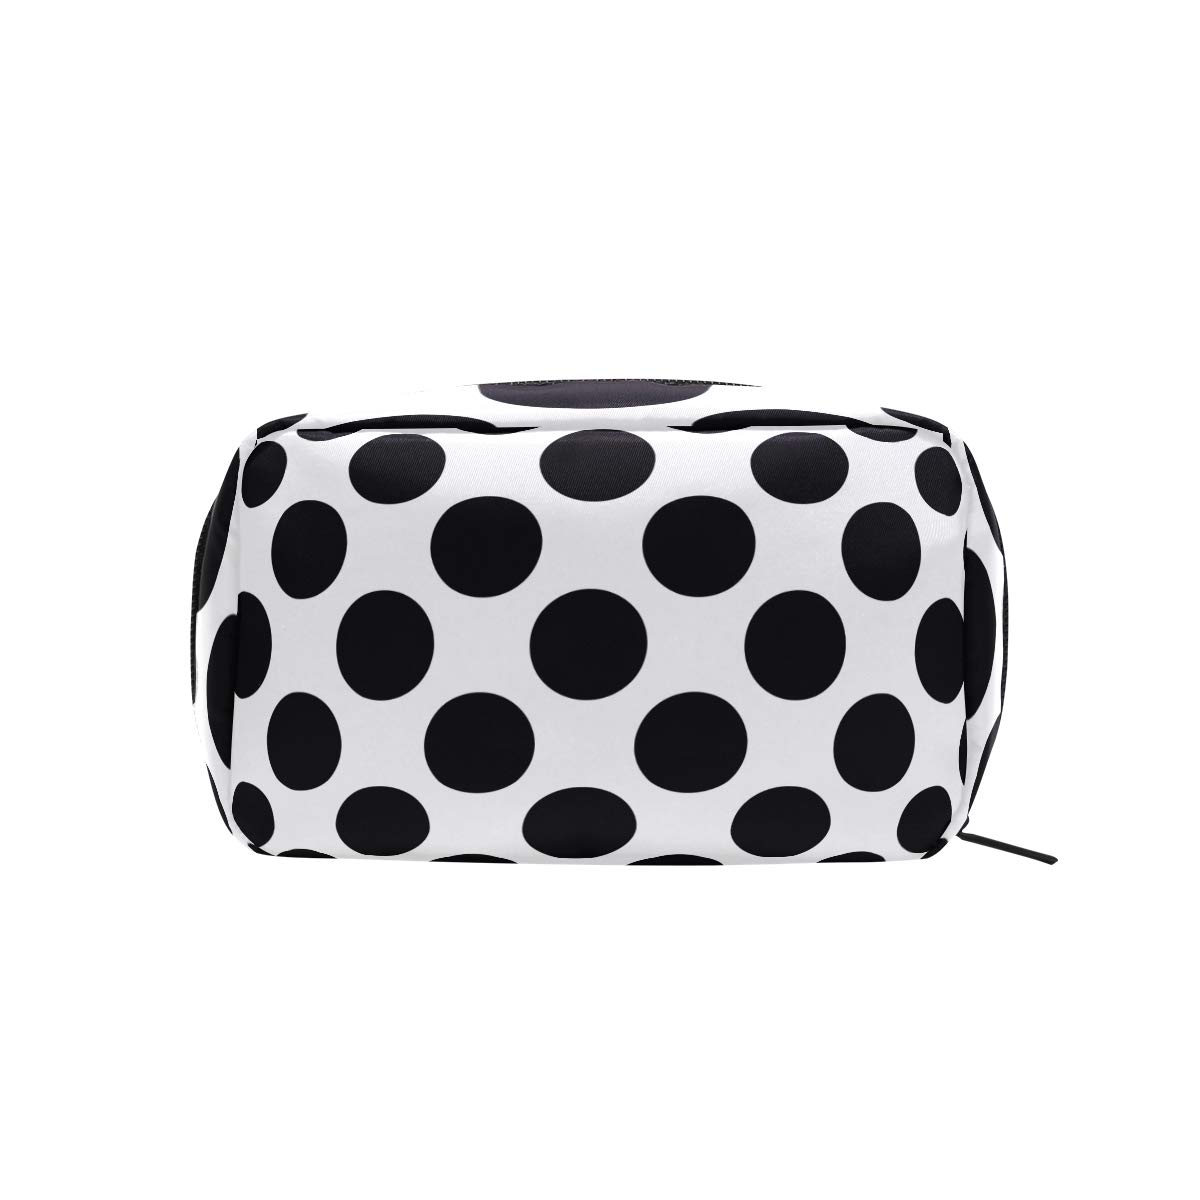 Polka Dots Black White Cosmetic Bag Makeup Case Toiletry Pouch